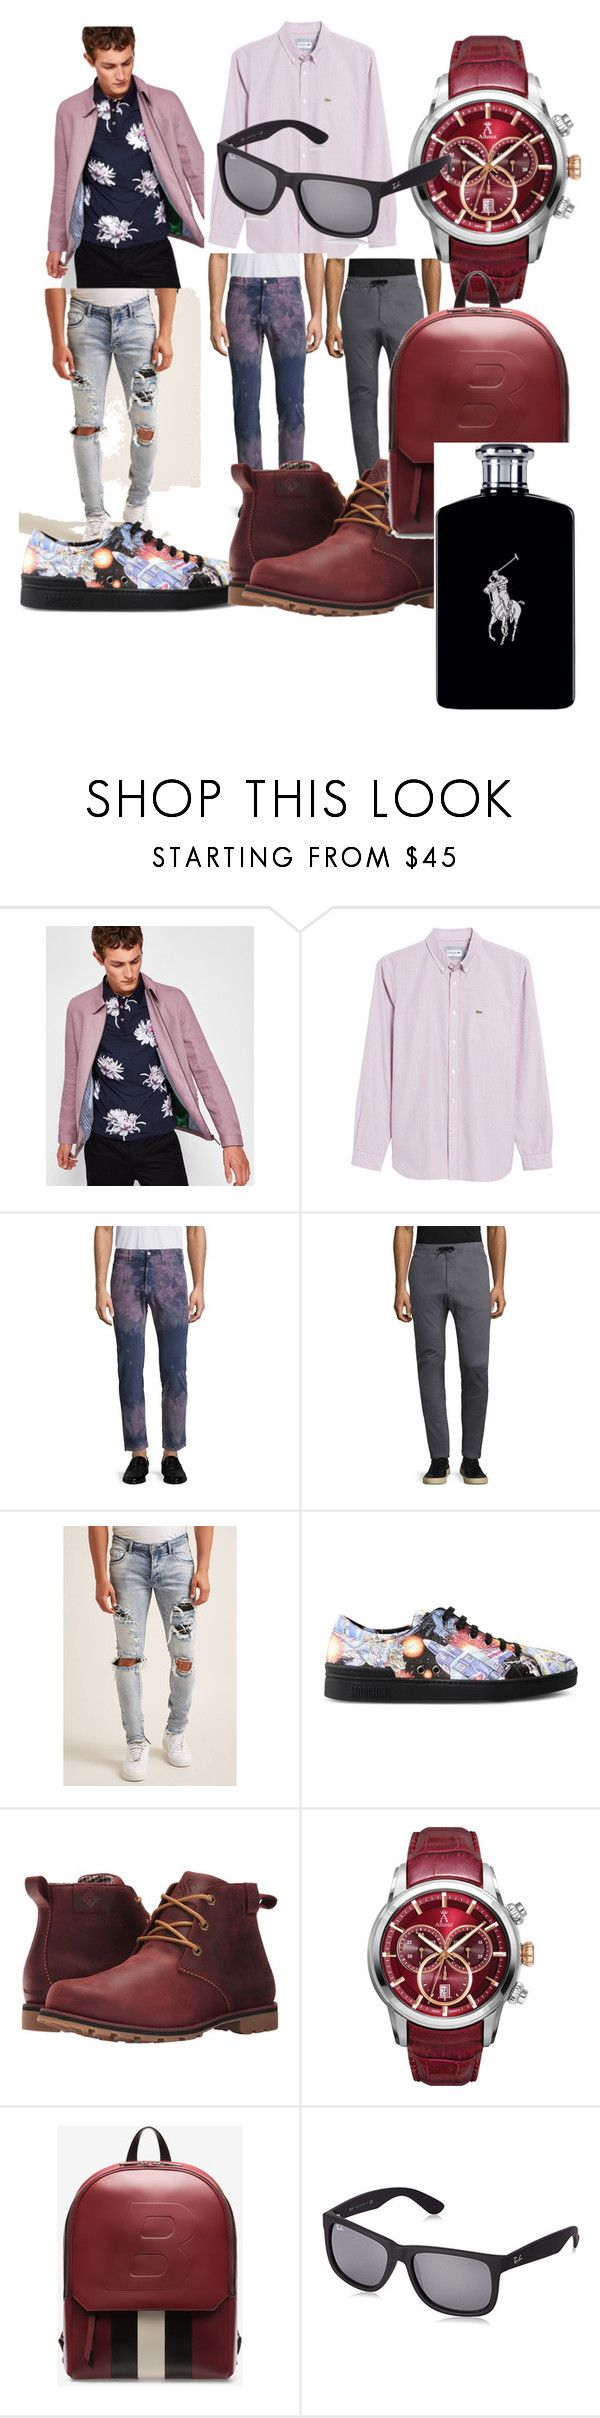 """""""#winter#trend#fashone#moda#men#"""" by hannazakaria ❤ liked on Polyvore featuring Ted Baker, Lacoste, Gucci, Zanerobe, 21 Men, Moschino, Columbia, Allurez, Bally and Ray-Ban"""